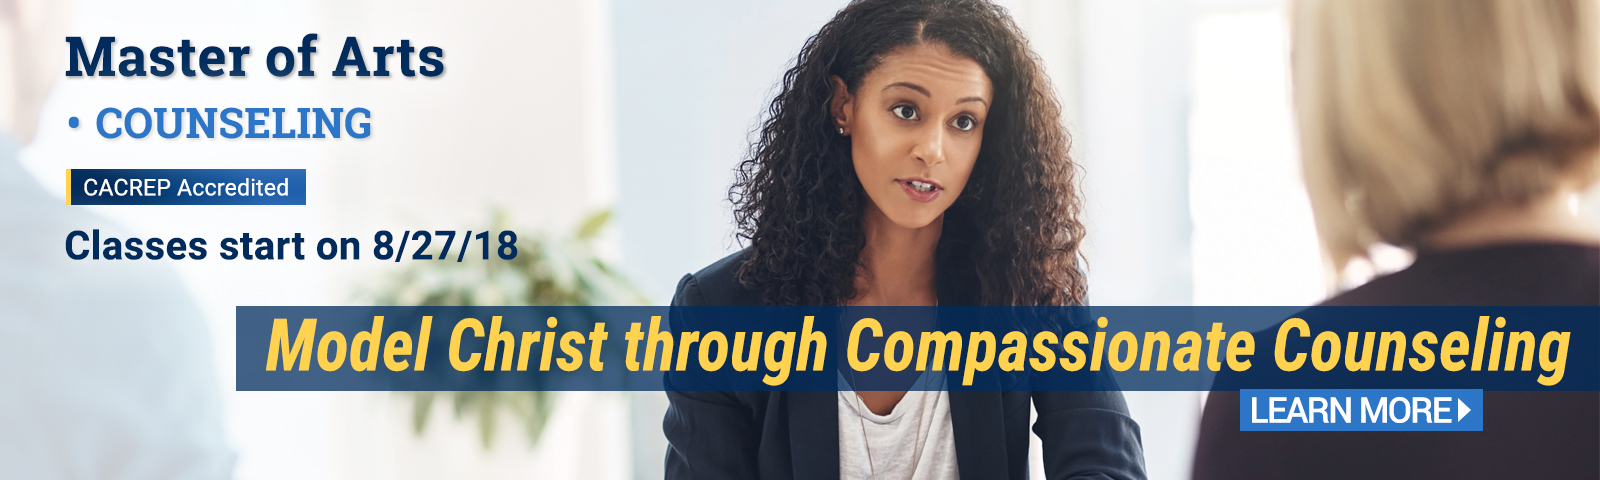 Earn your Master of Arts in Counseling and model Christ through compassionate counseling.